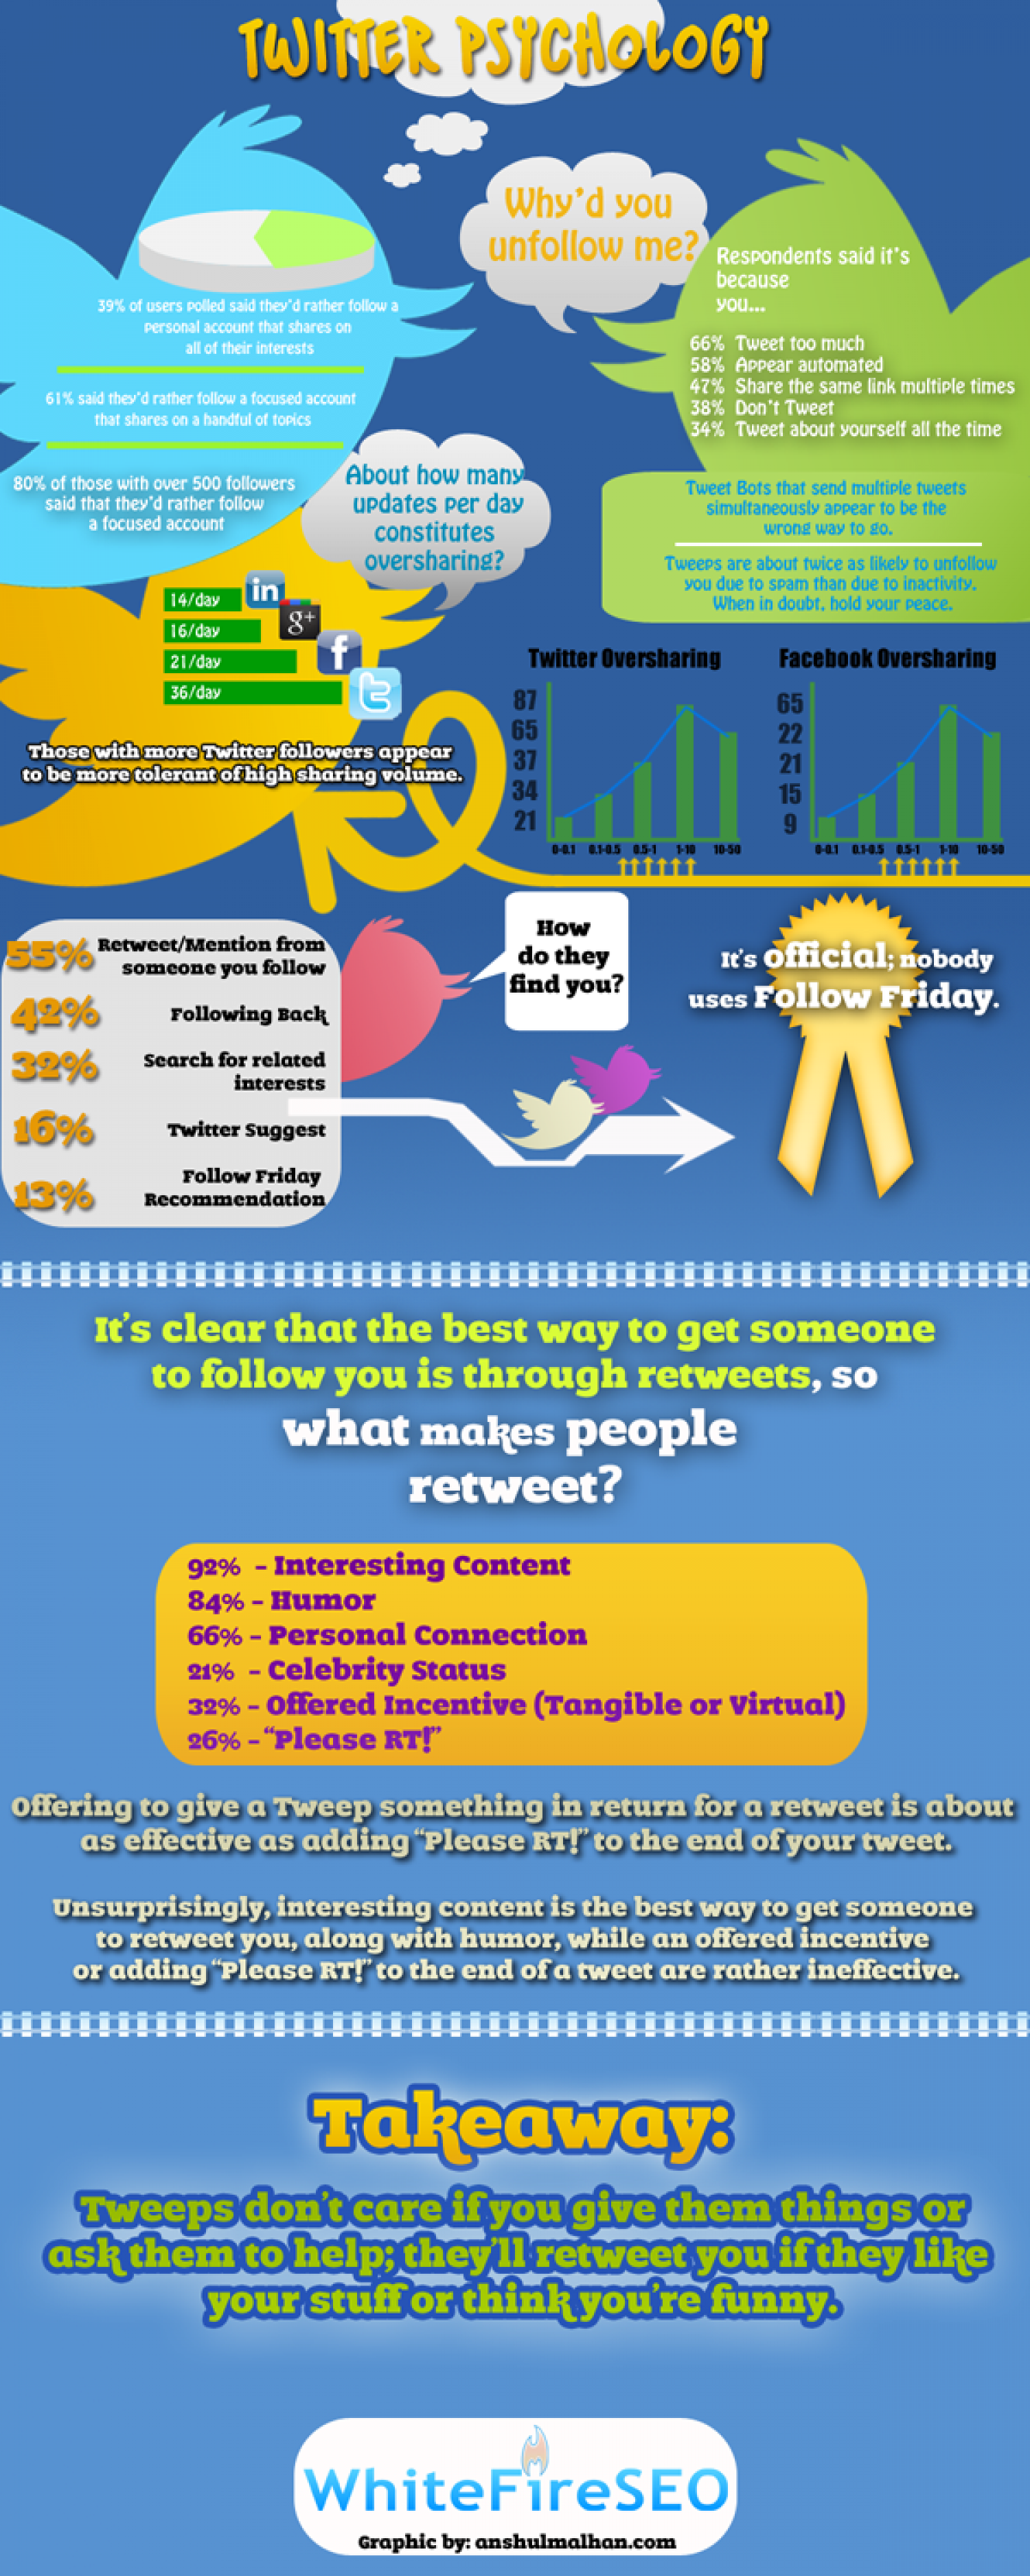 Twitter Psychology for Marketers Infographic